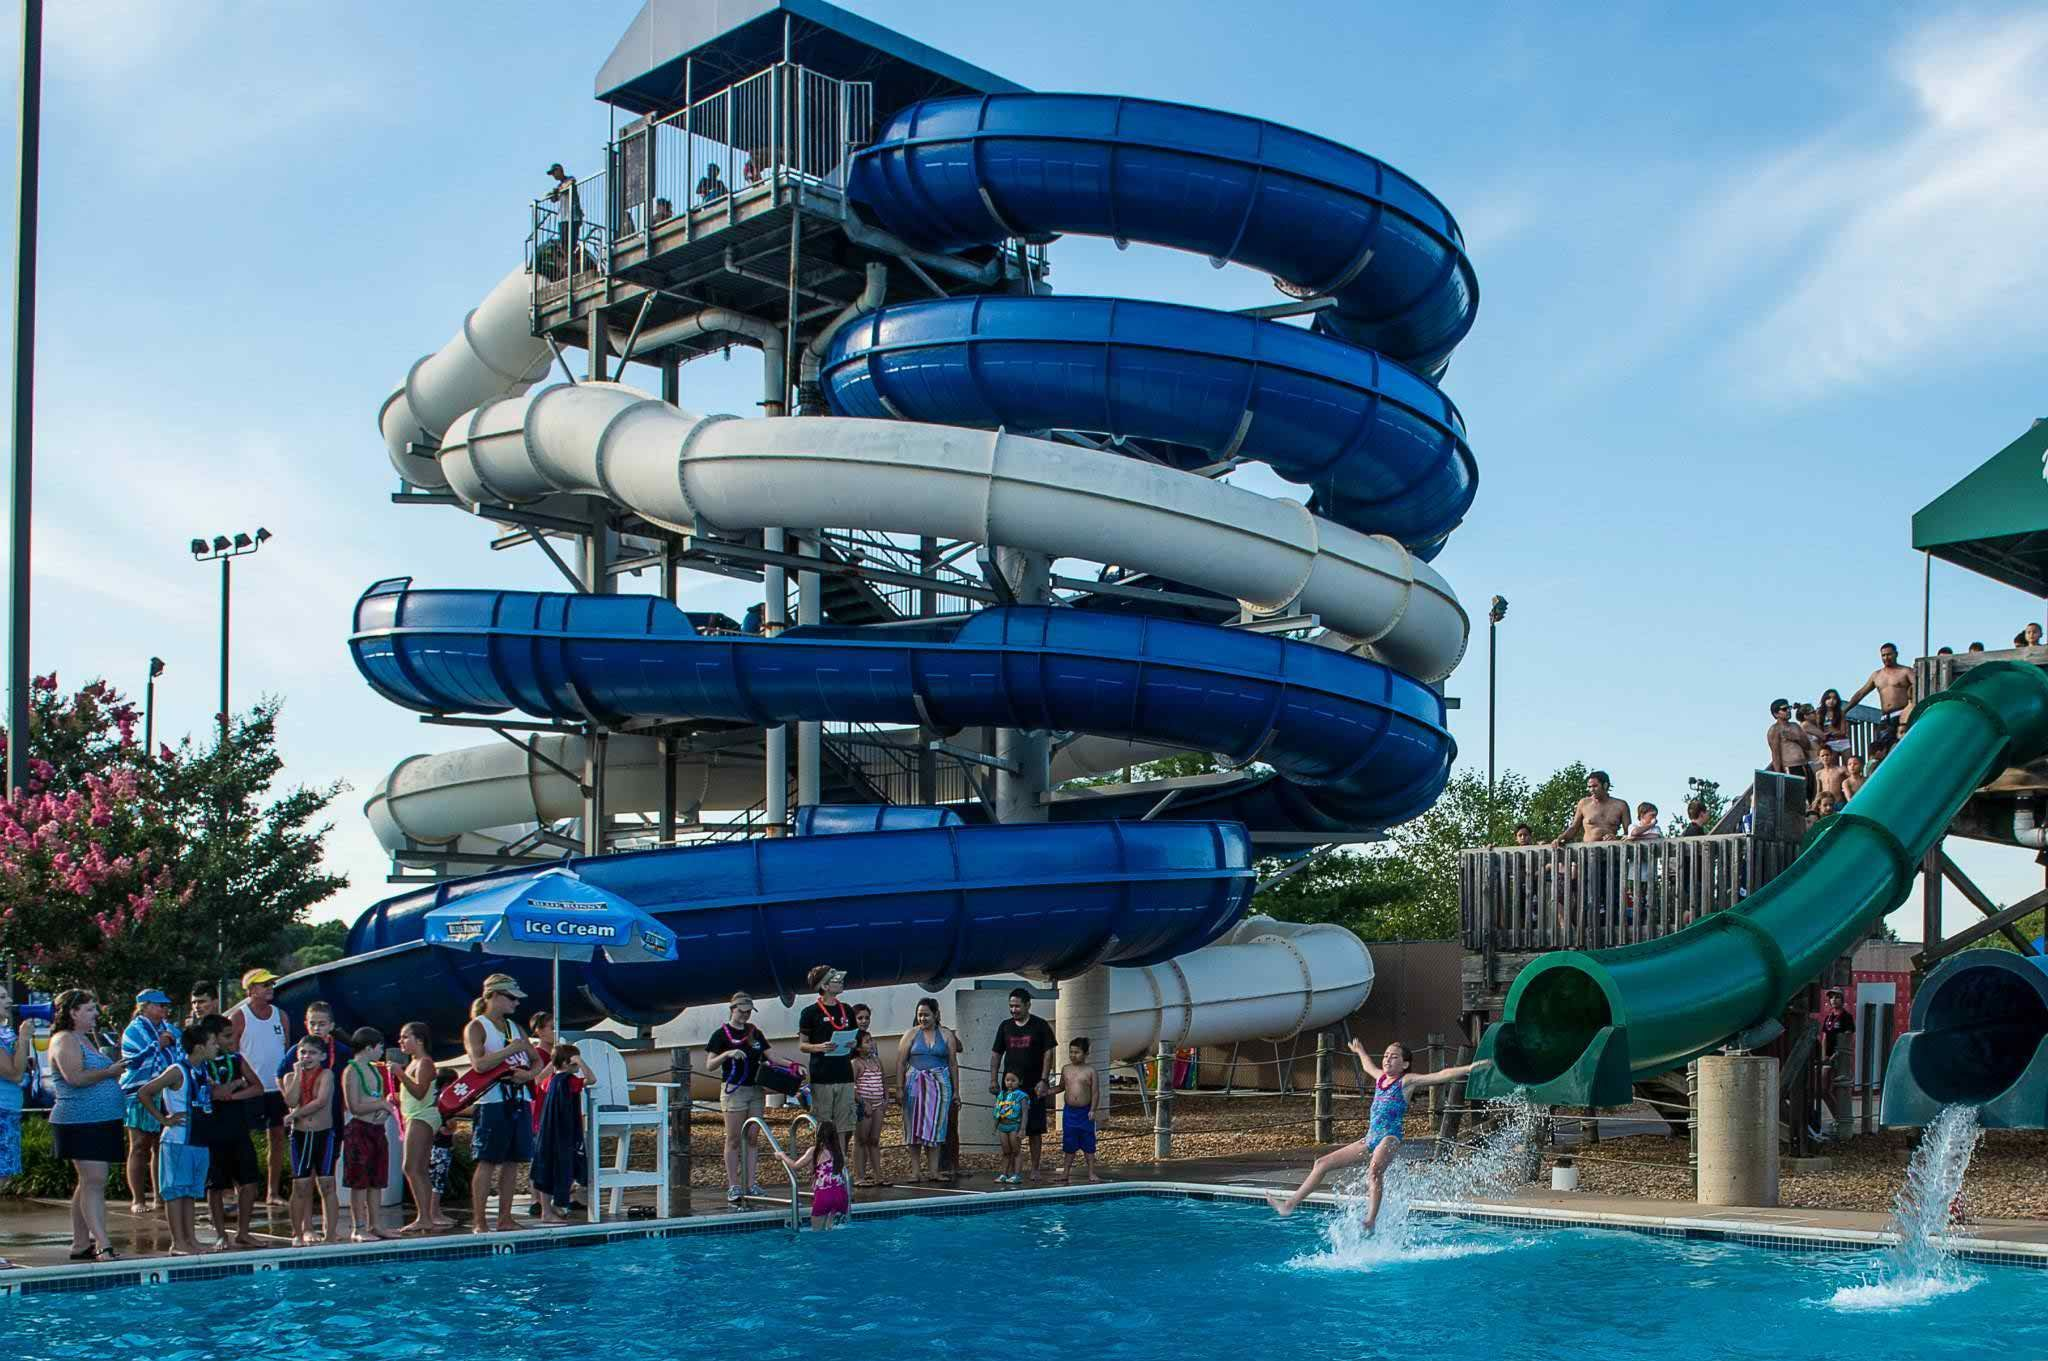 Splashdown Is Goa S Coolest Water Park The Facility Boasts Of 5 Pools A Variety Slides Flumes And Other Interesting Features